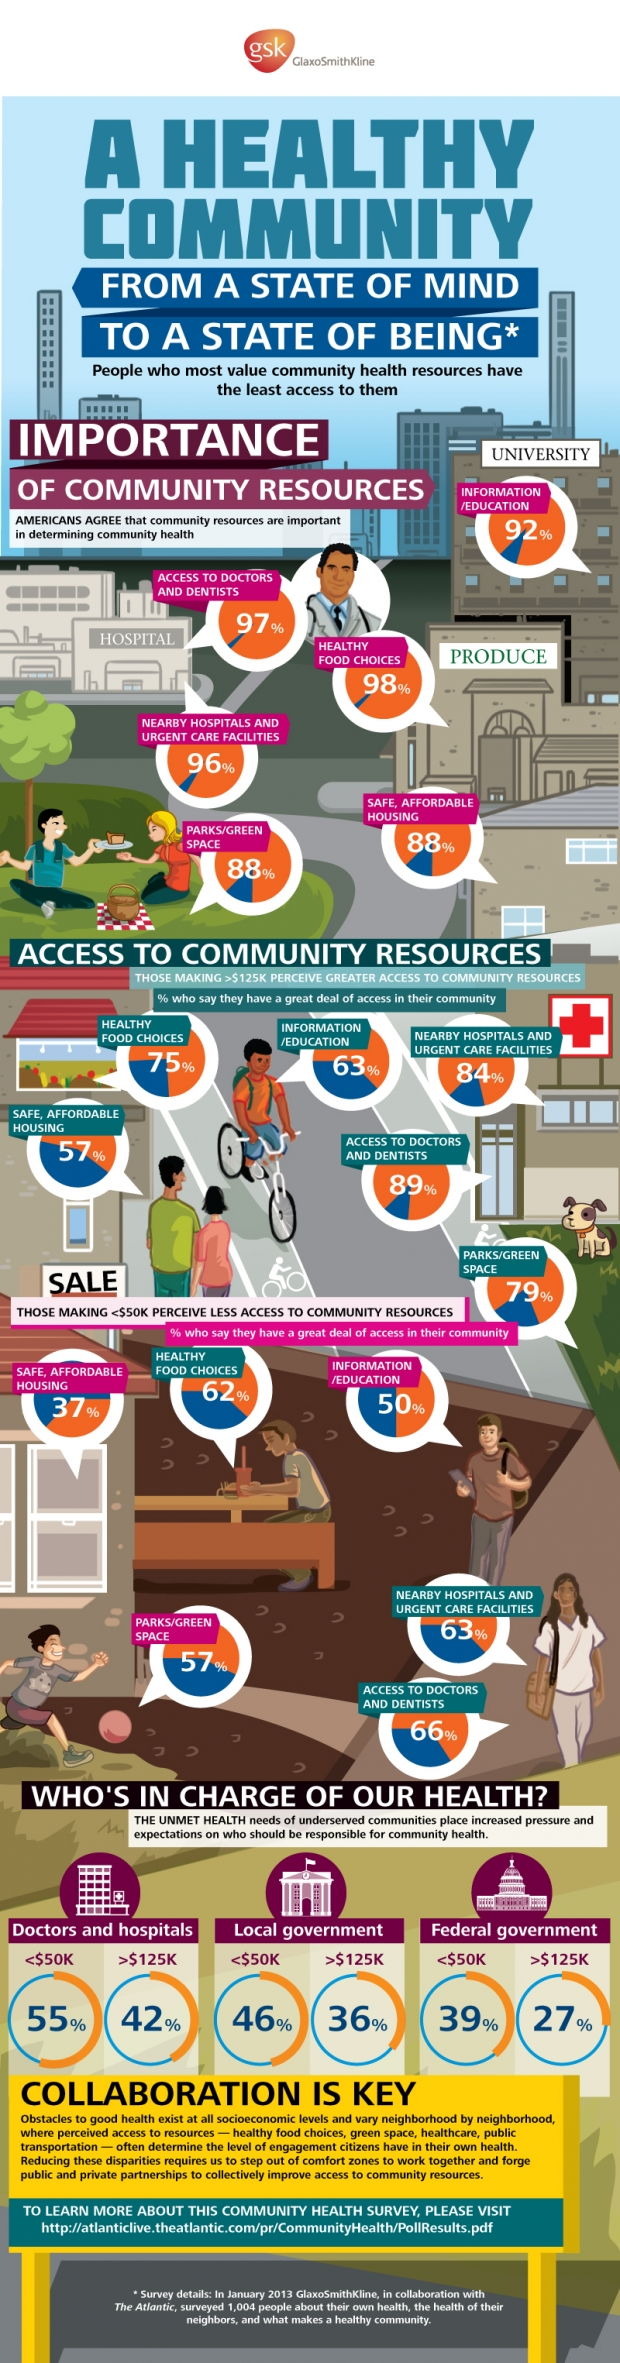 Healthy-Community-Survey-Infographic